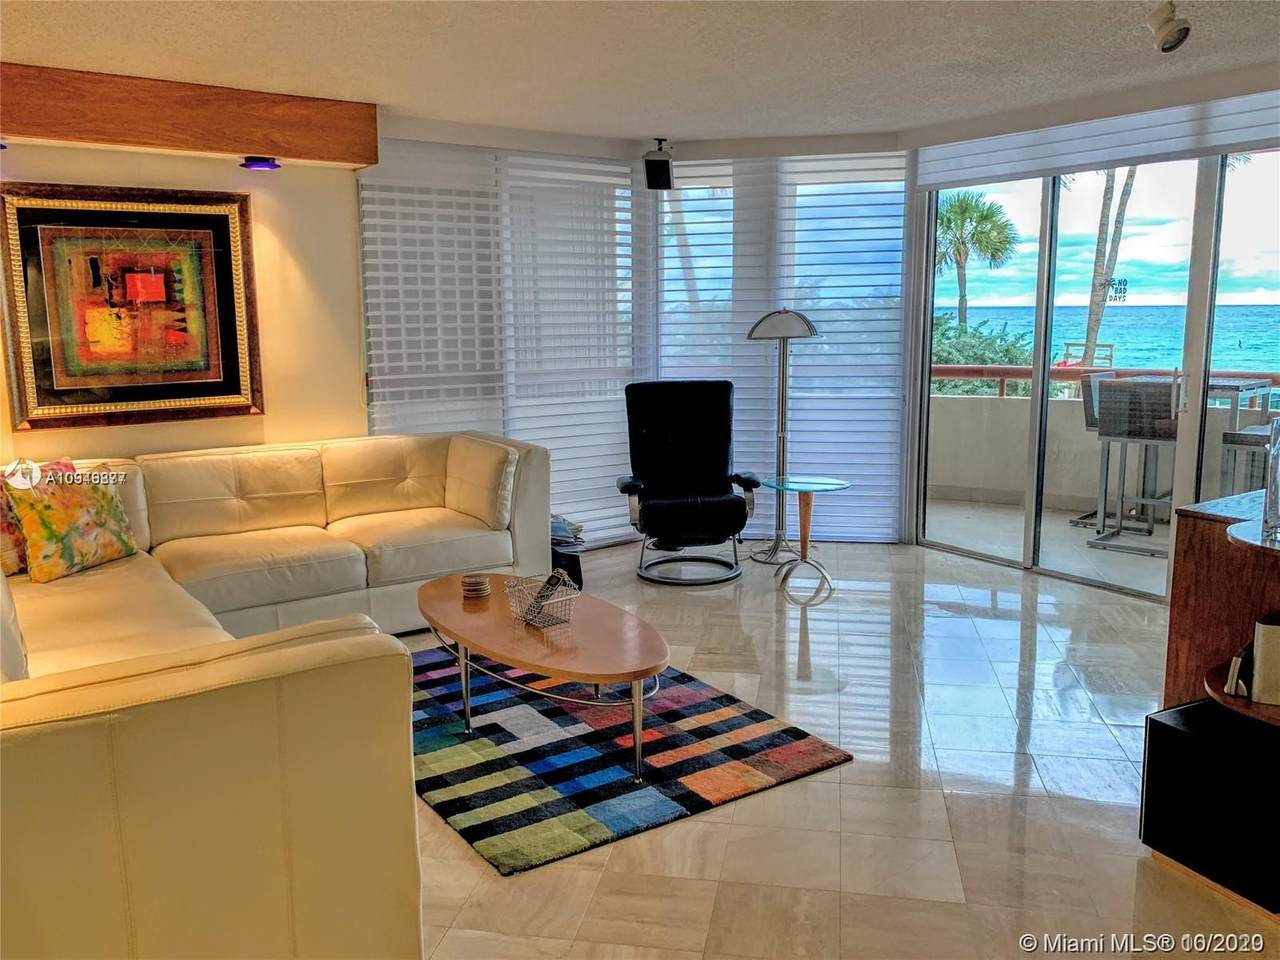 15645 Collins Ave - Photo 1